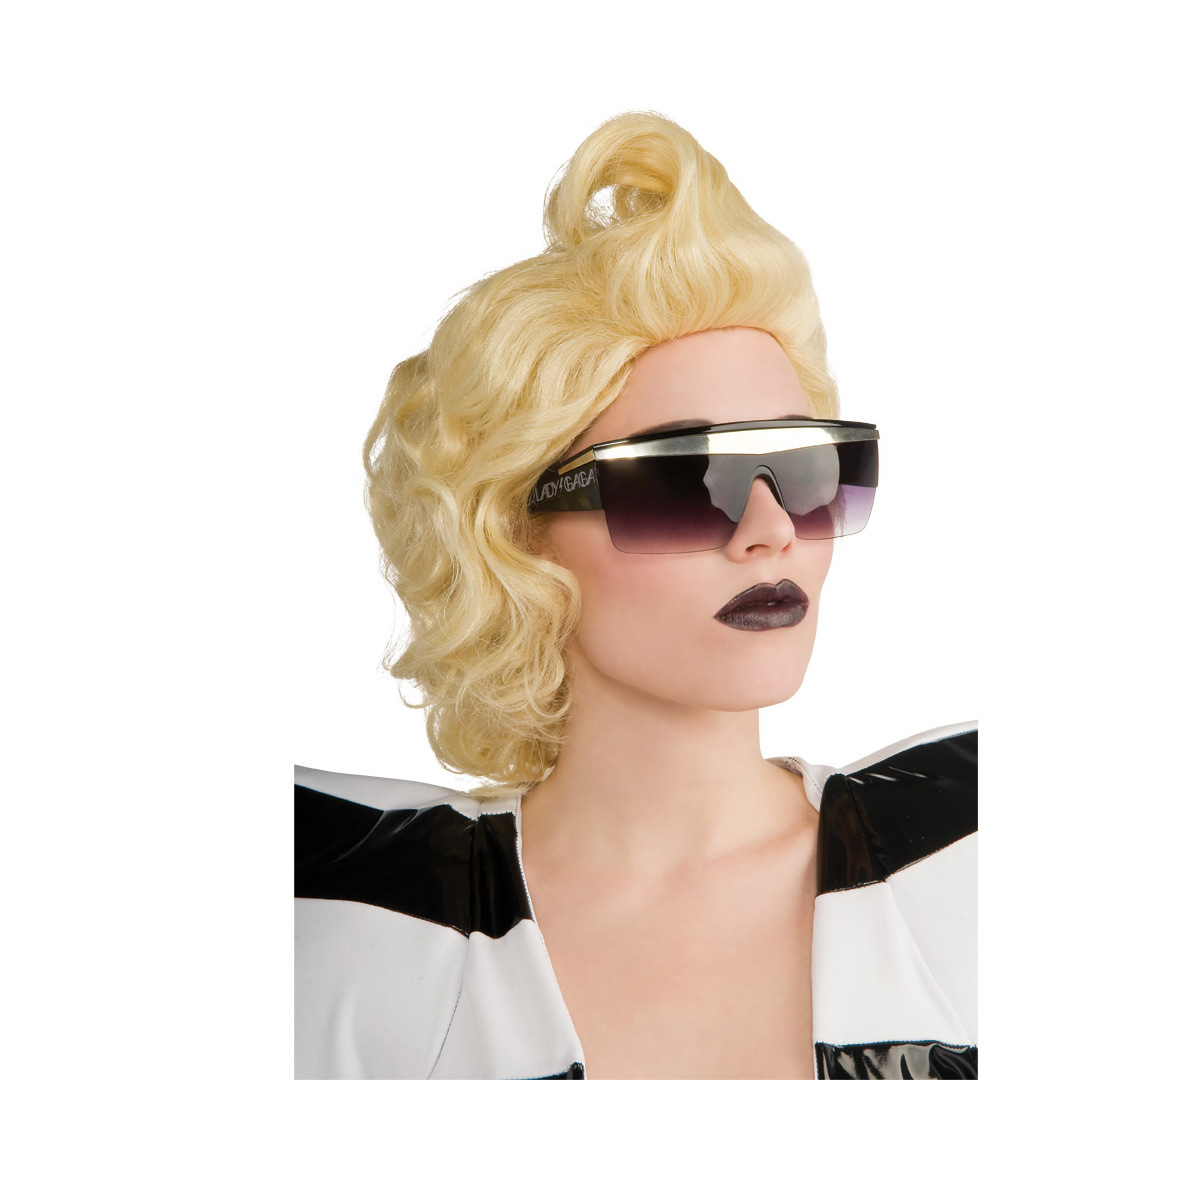 Lady Gaga Glasses